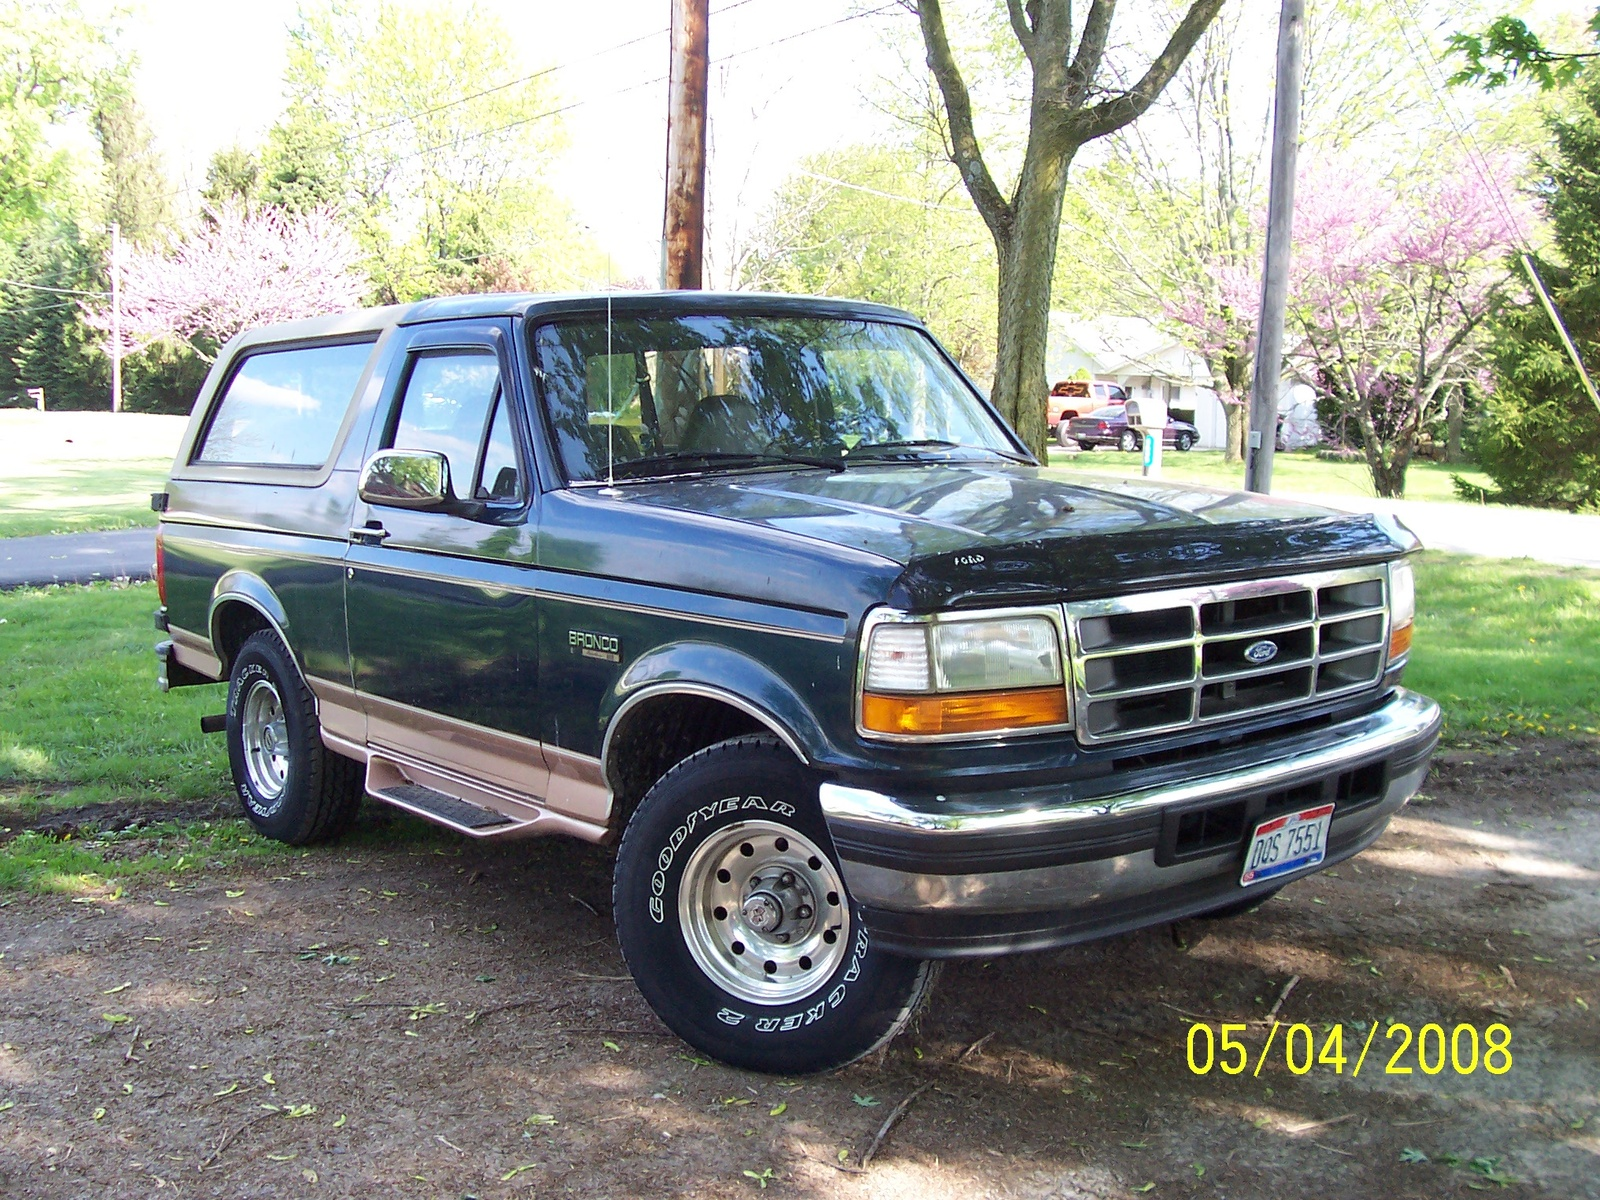 1995 ford bronco pictures cargurus for 06 jeep liberty window regulator recall